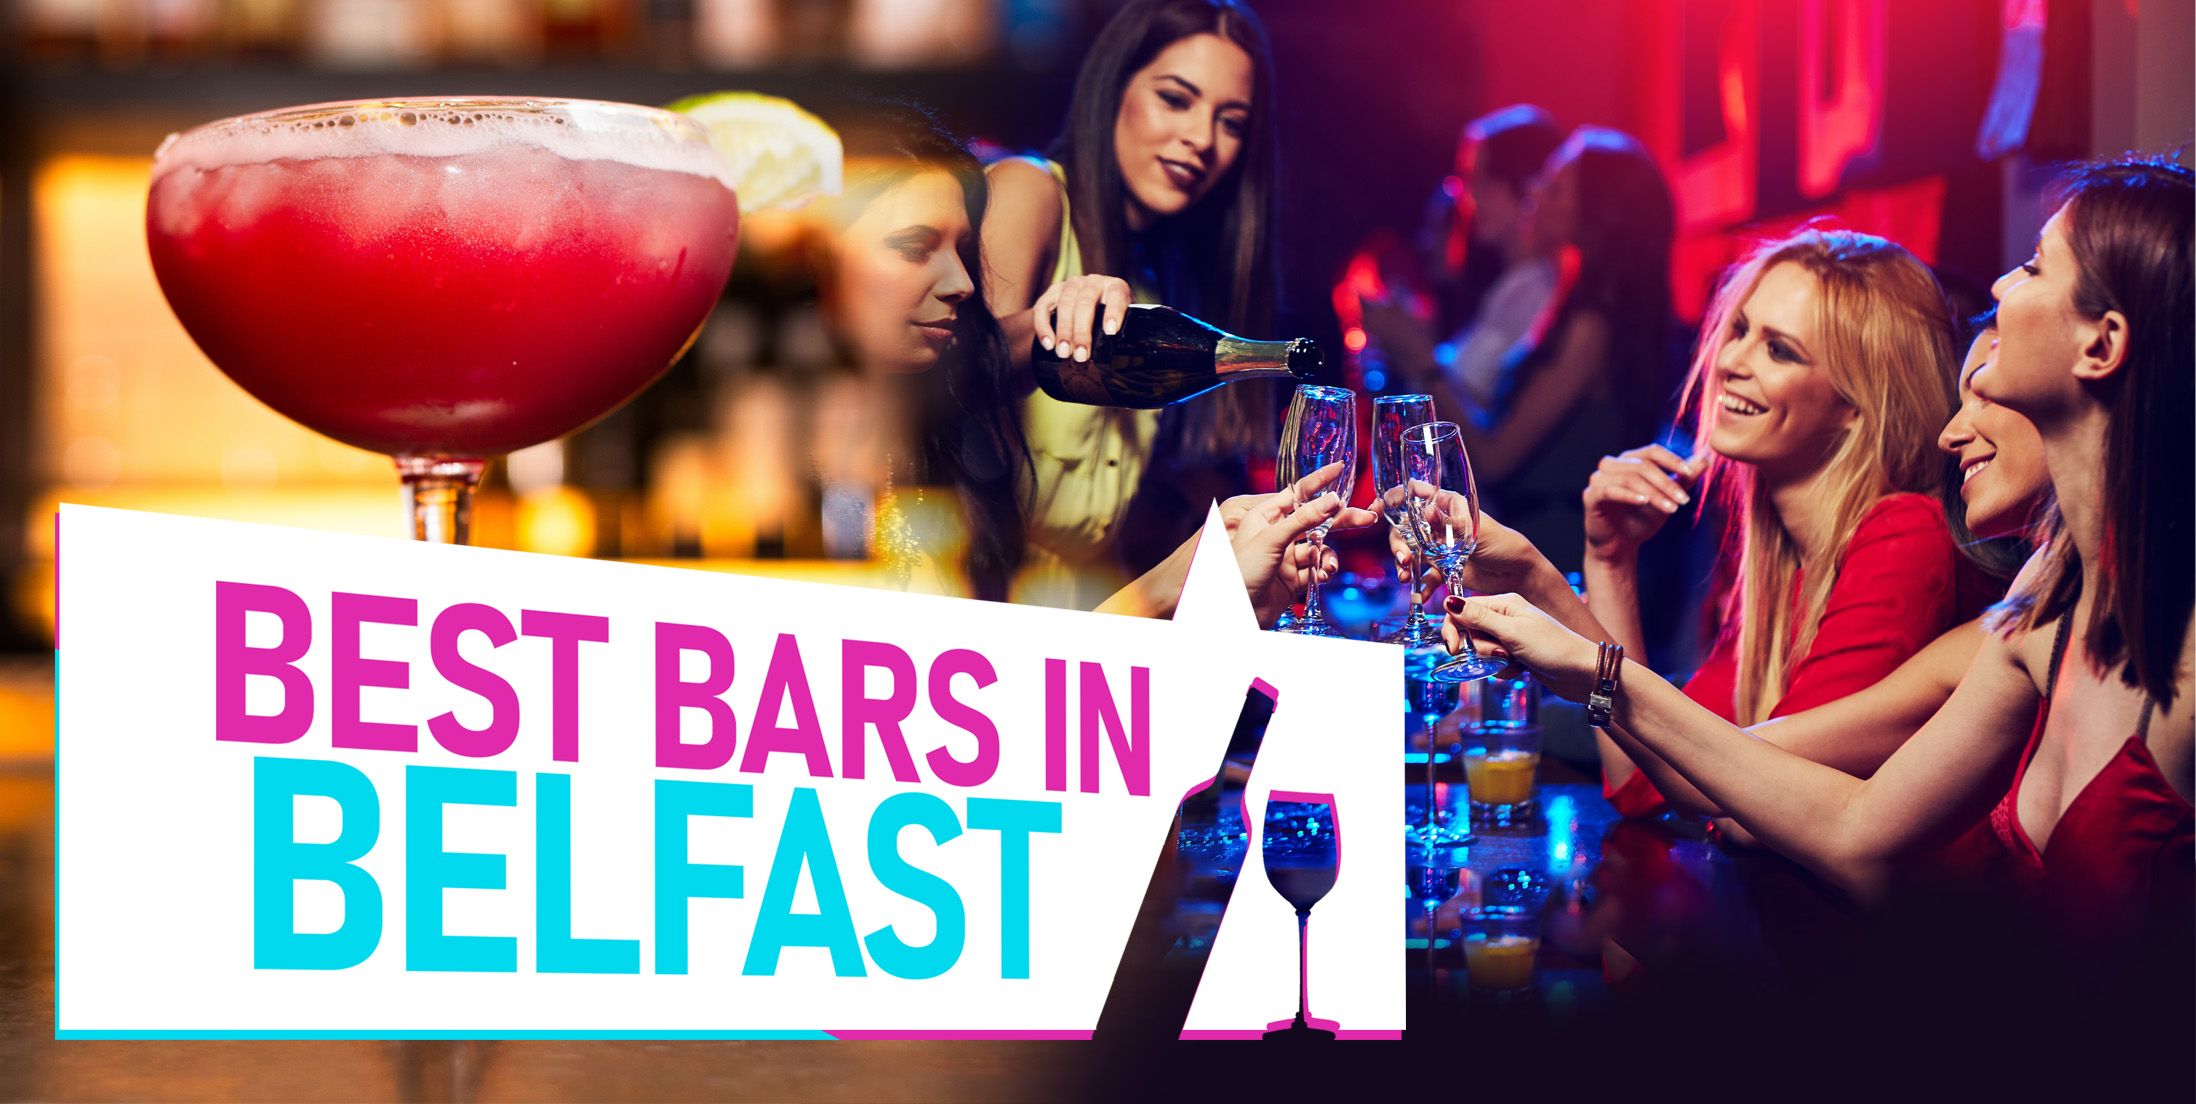 Best Bars in Belfast